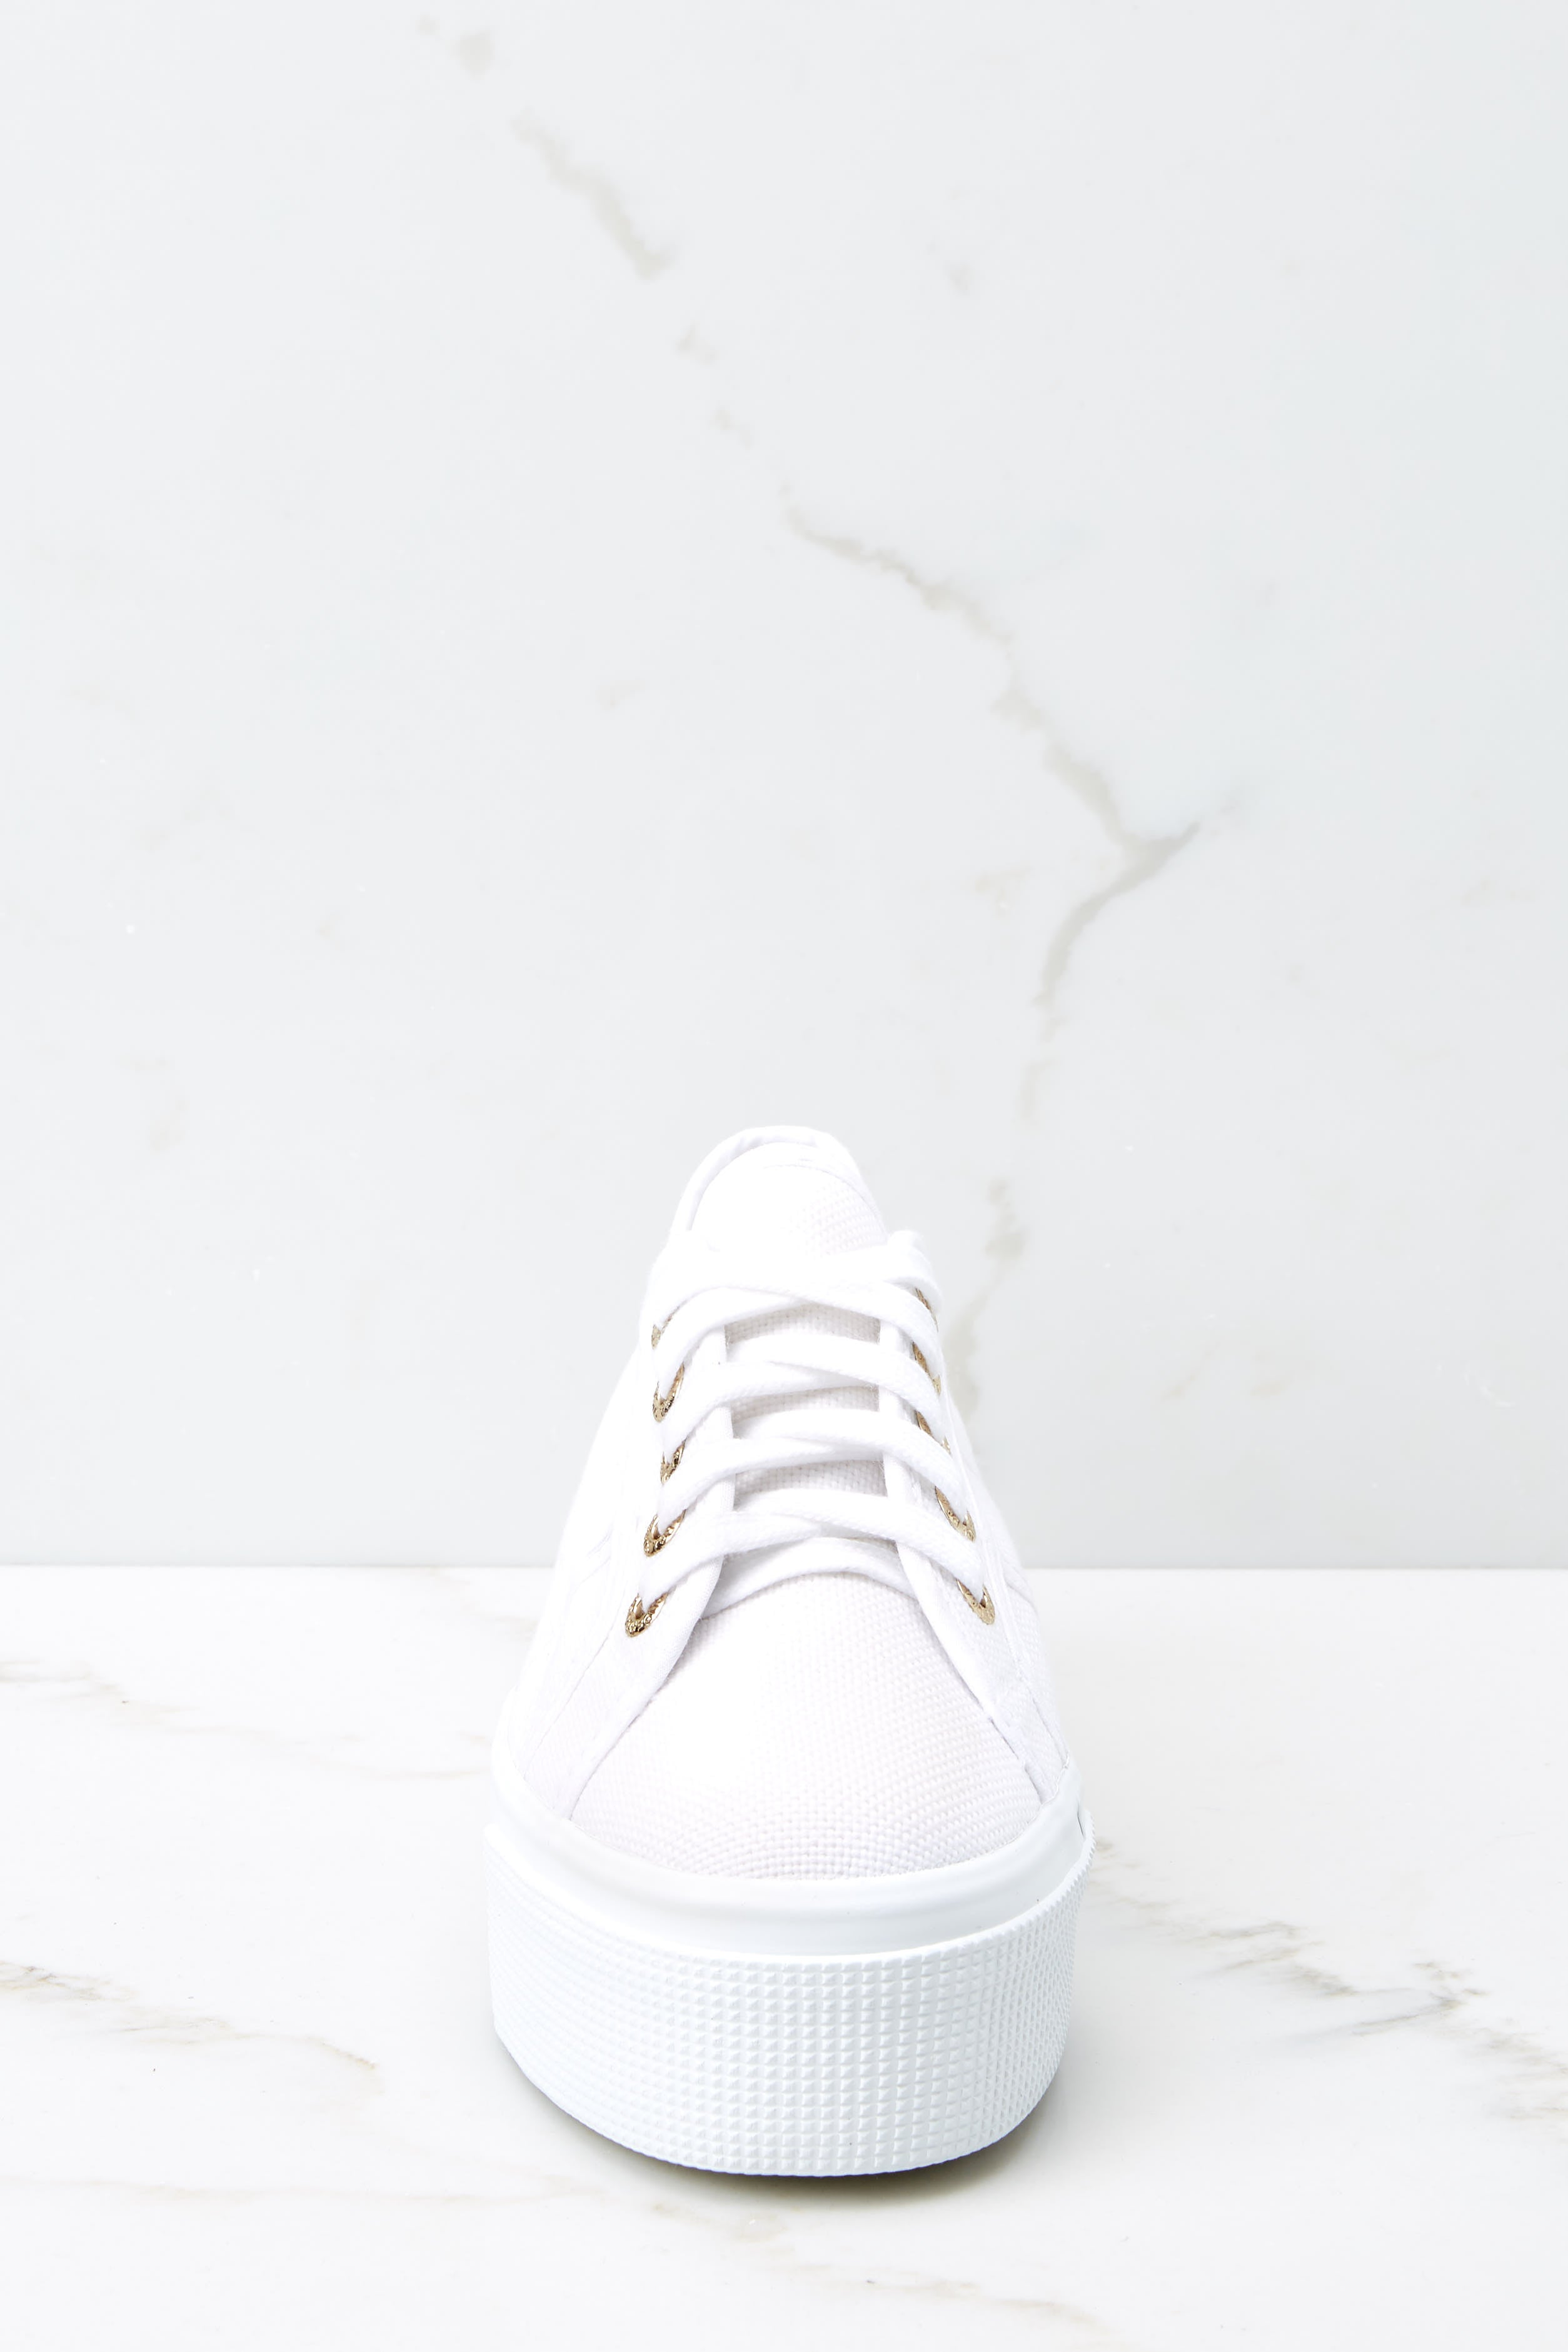 3 2790 Acot White And Gold Platform Sneakers at reddress.com